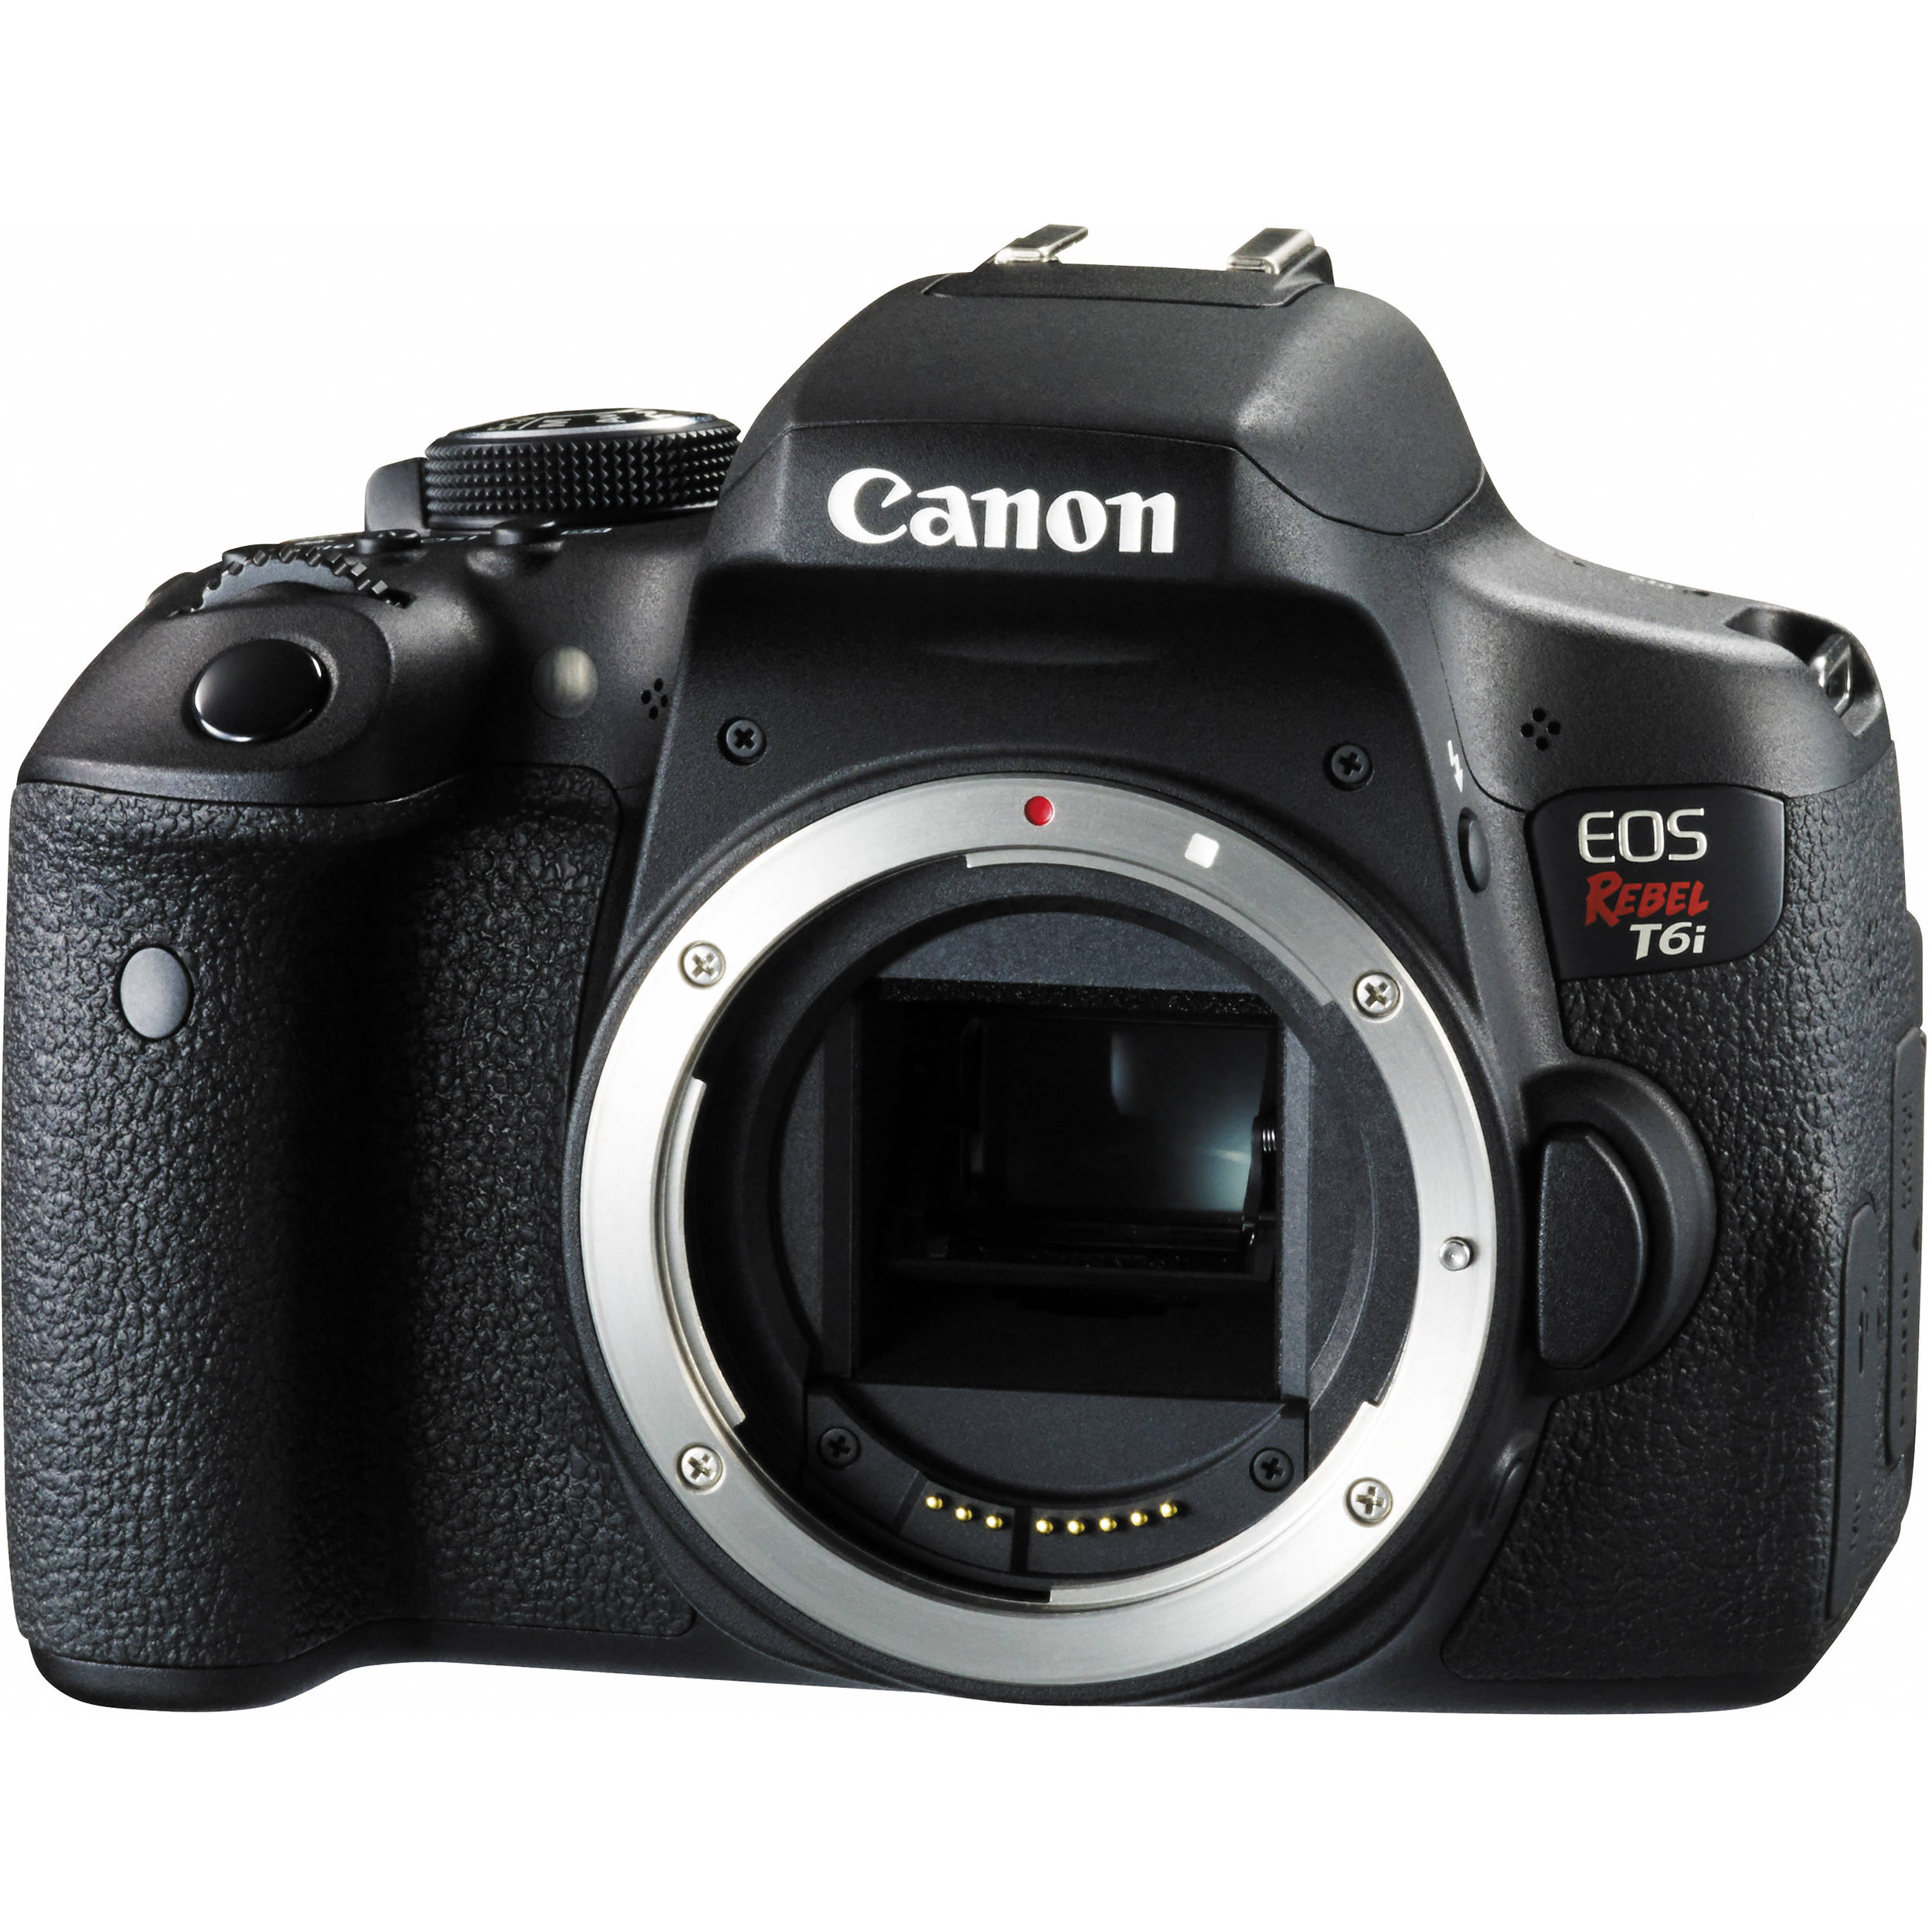 Camera Recommended Dslr Camera For Beginners 9 recommended entry level dslr cameras bh explora canon eos rebel t6i camera